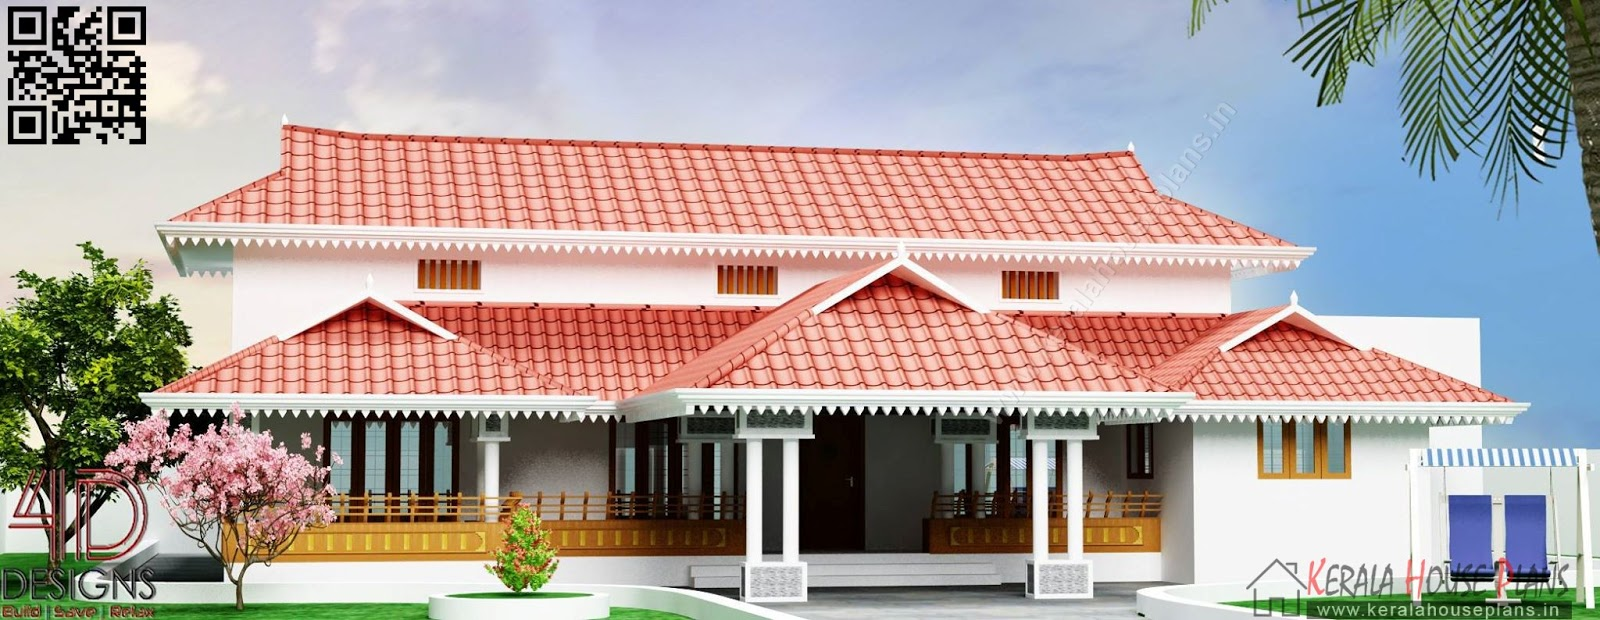 Kerala traditional home elevation design House list disign